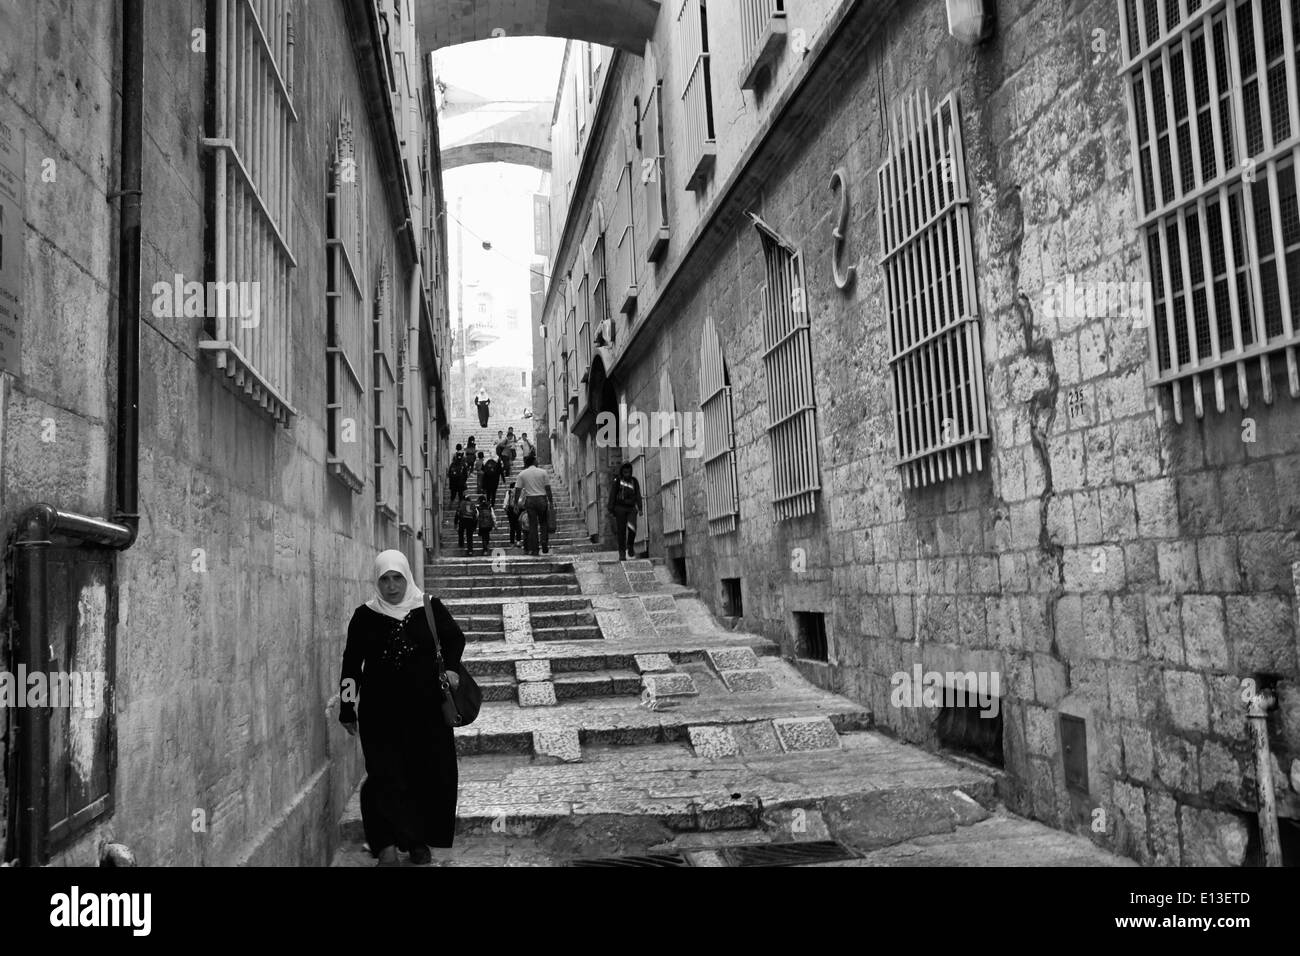 The Nun's Ascent in Jerusalem, Israel in black and White - Stock Image